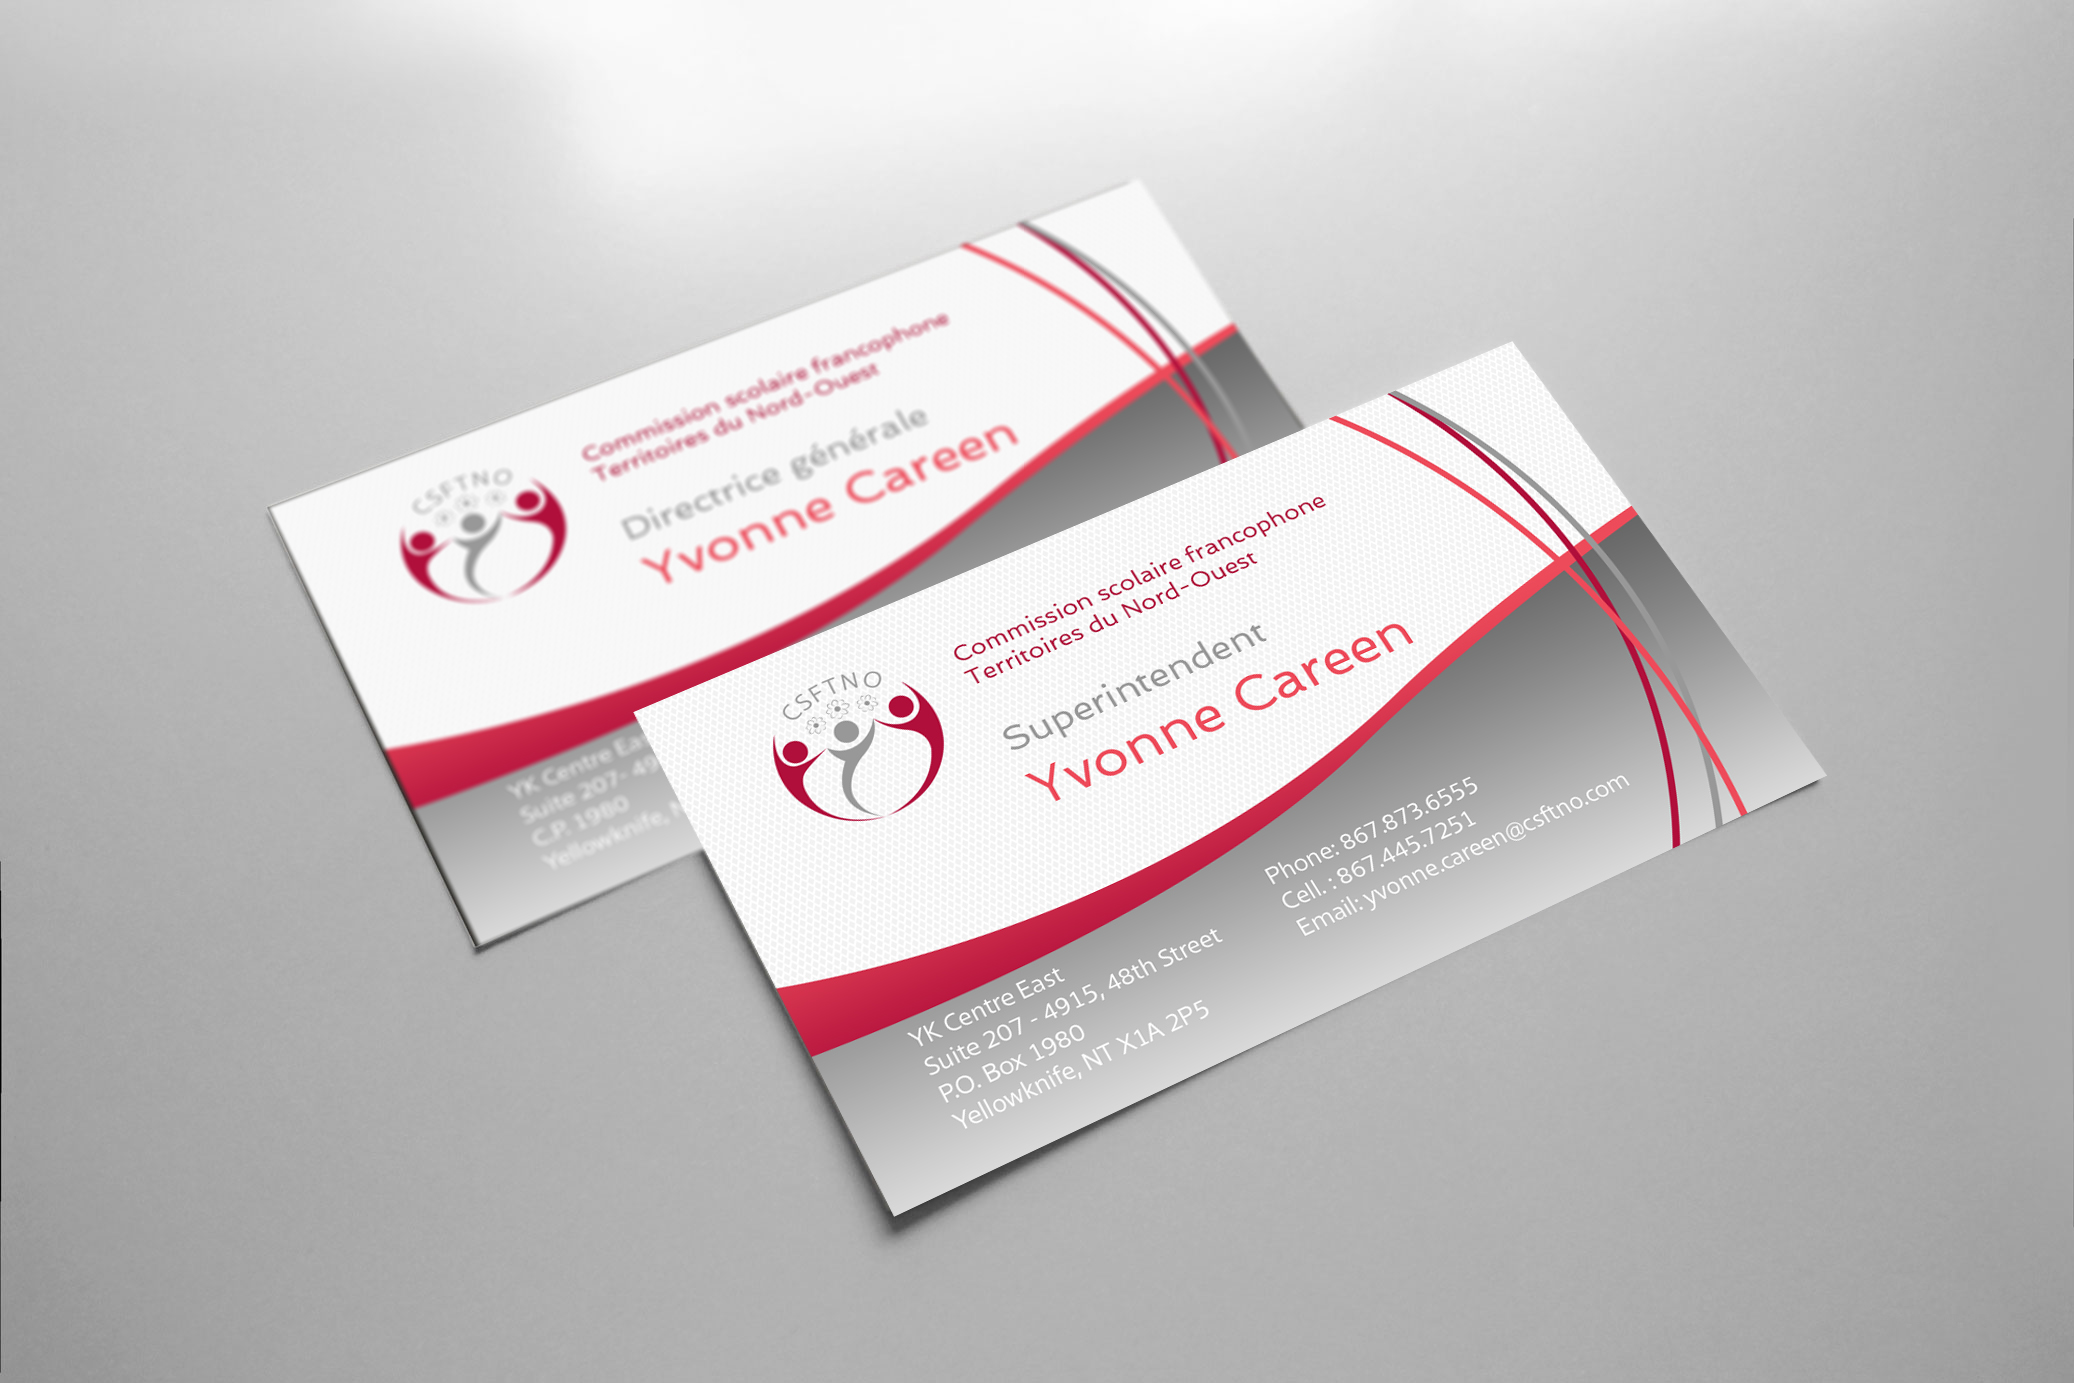 CSFTNO BUSINESS CARDS